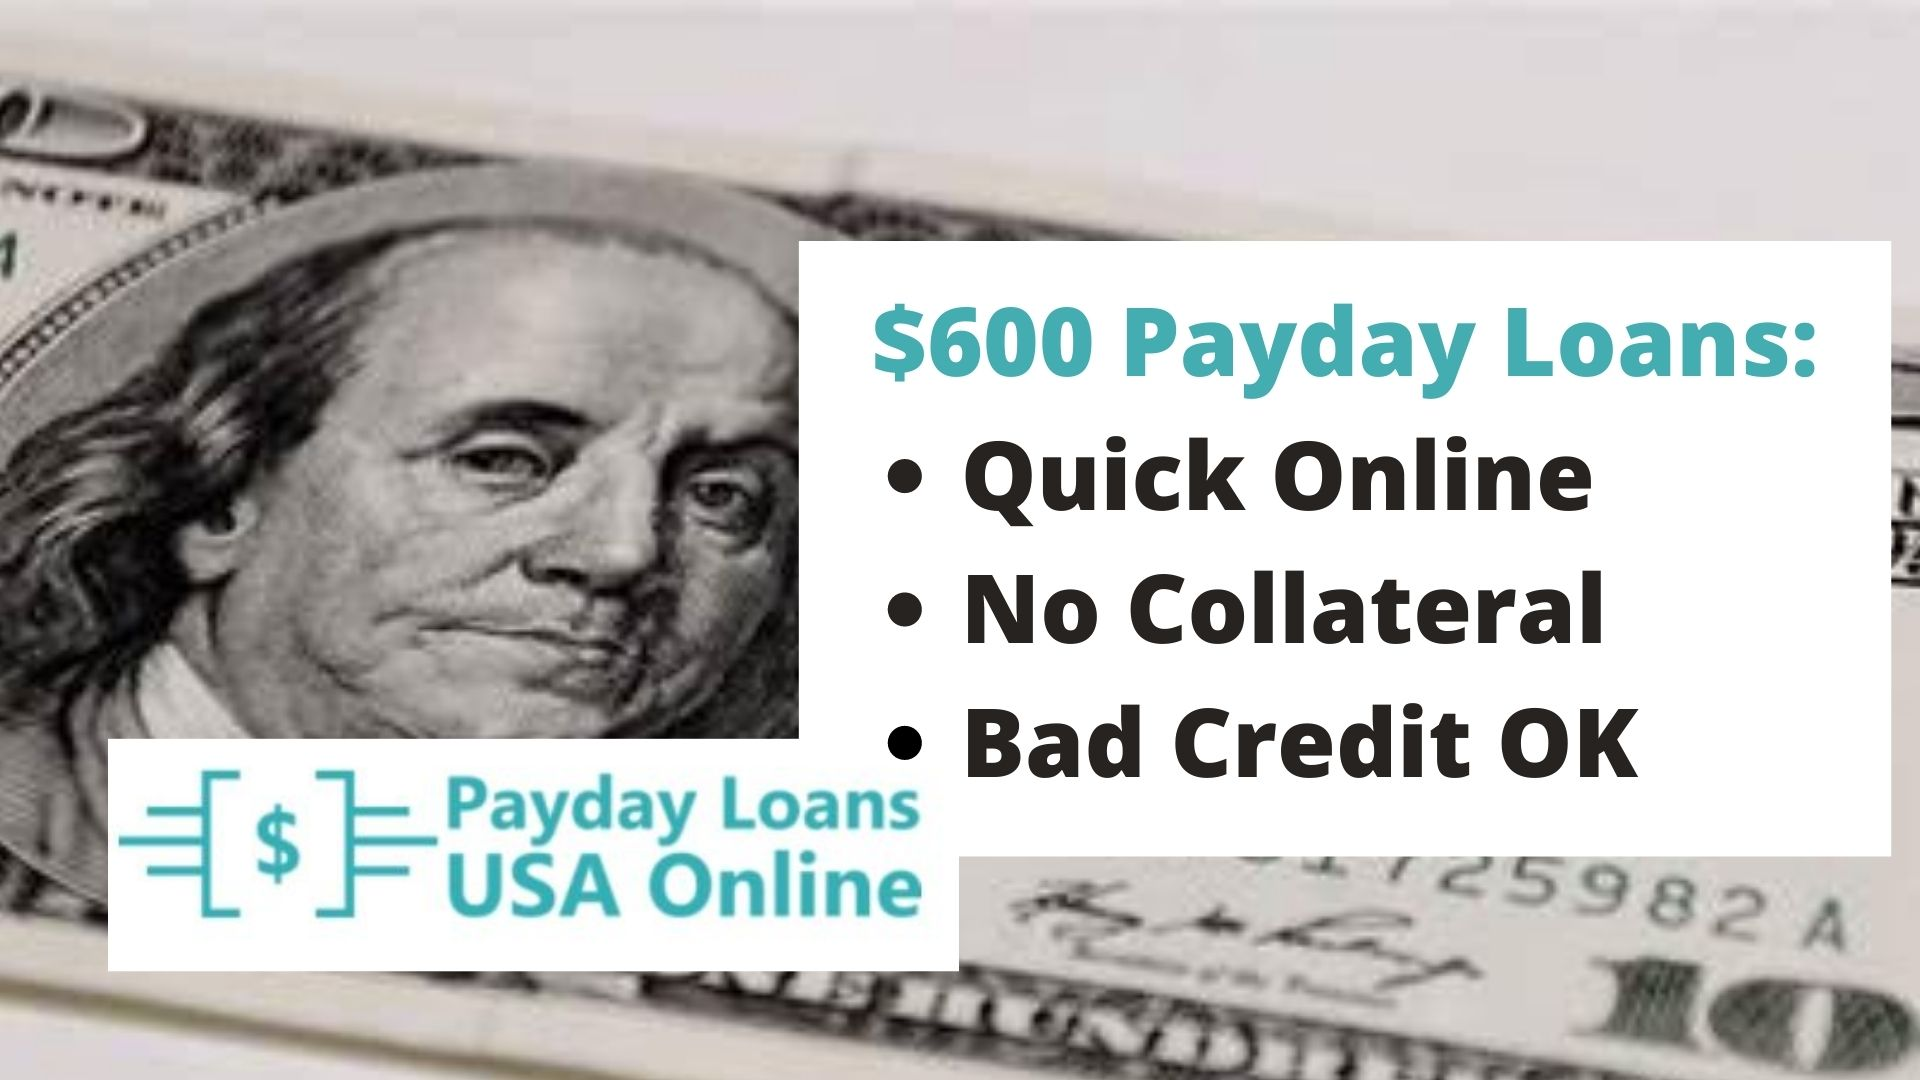 $600 Payday Loan